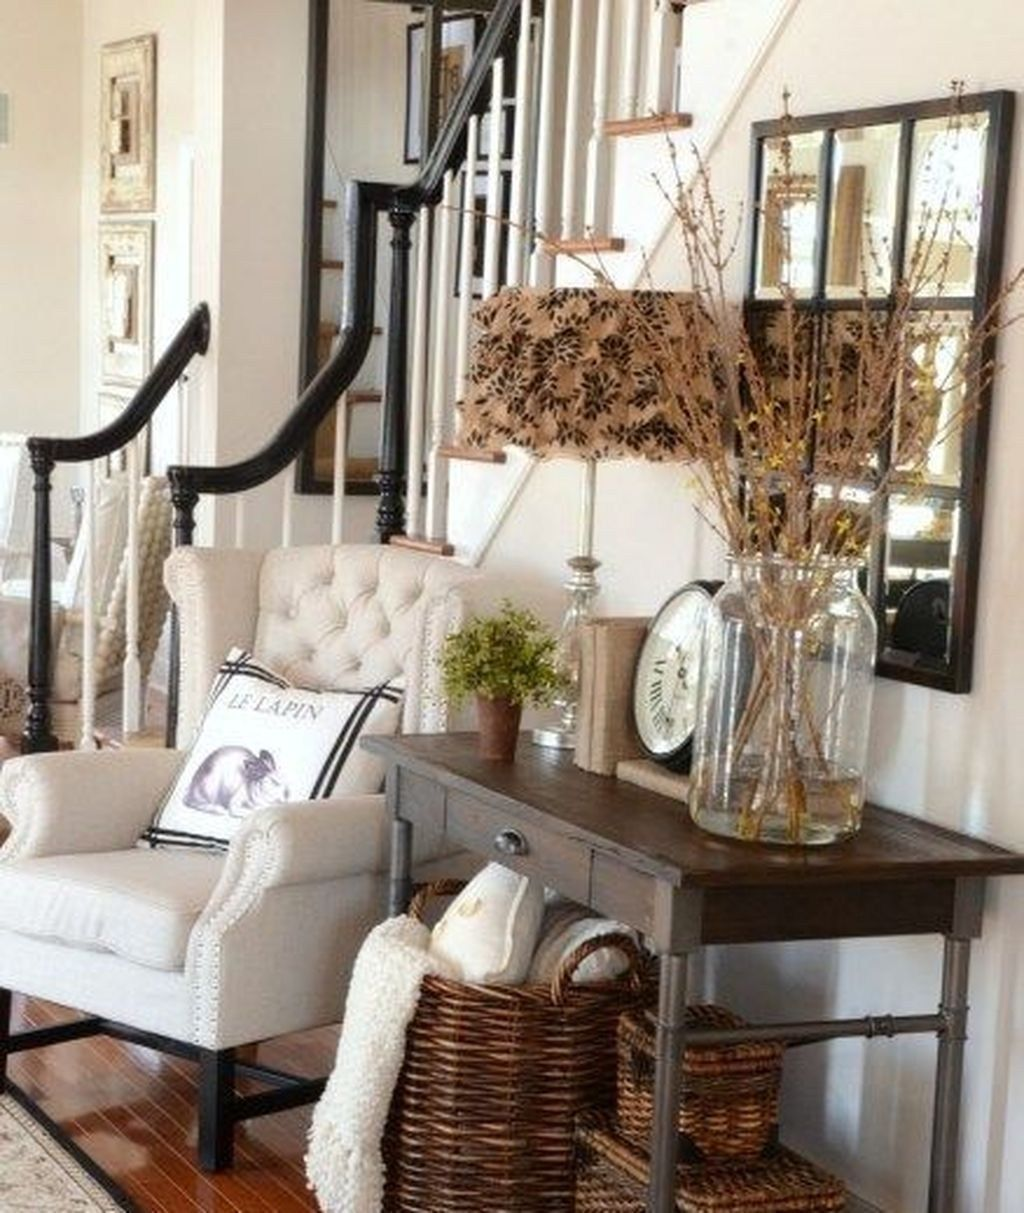 48 cool farmhouse living room decoration ideas modern on modern farmhouse living room design and decor inspirations country farmhouse furniture id=98439